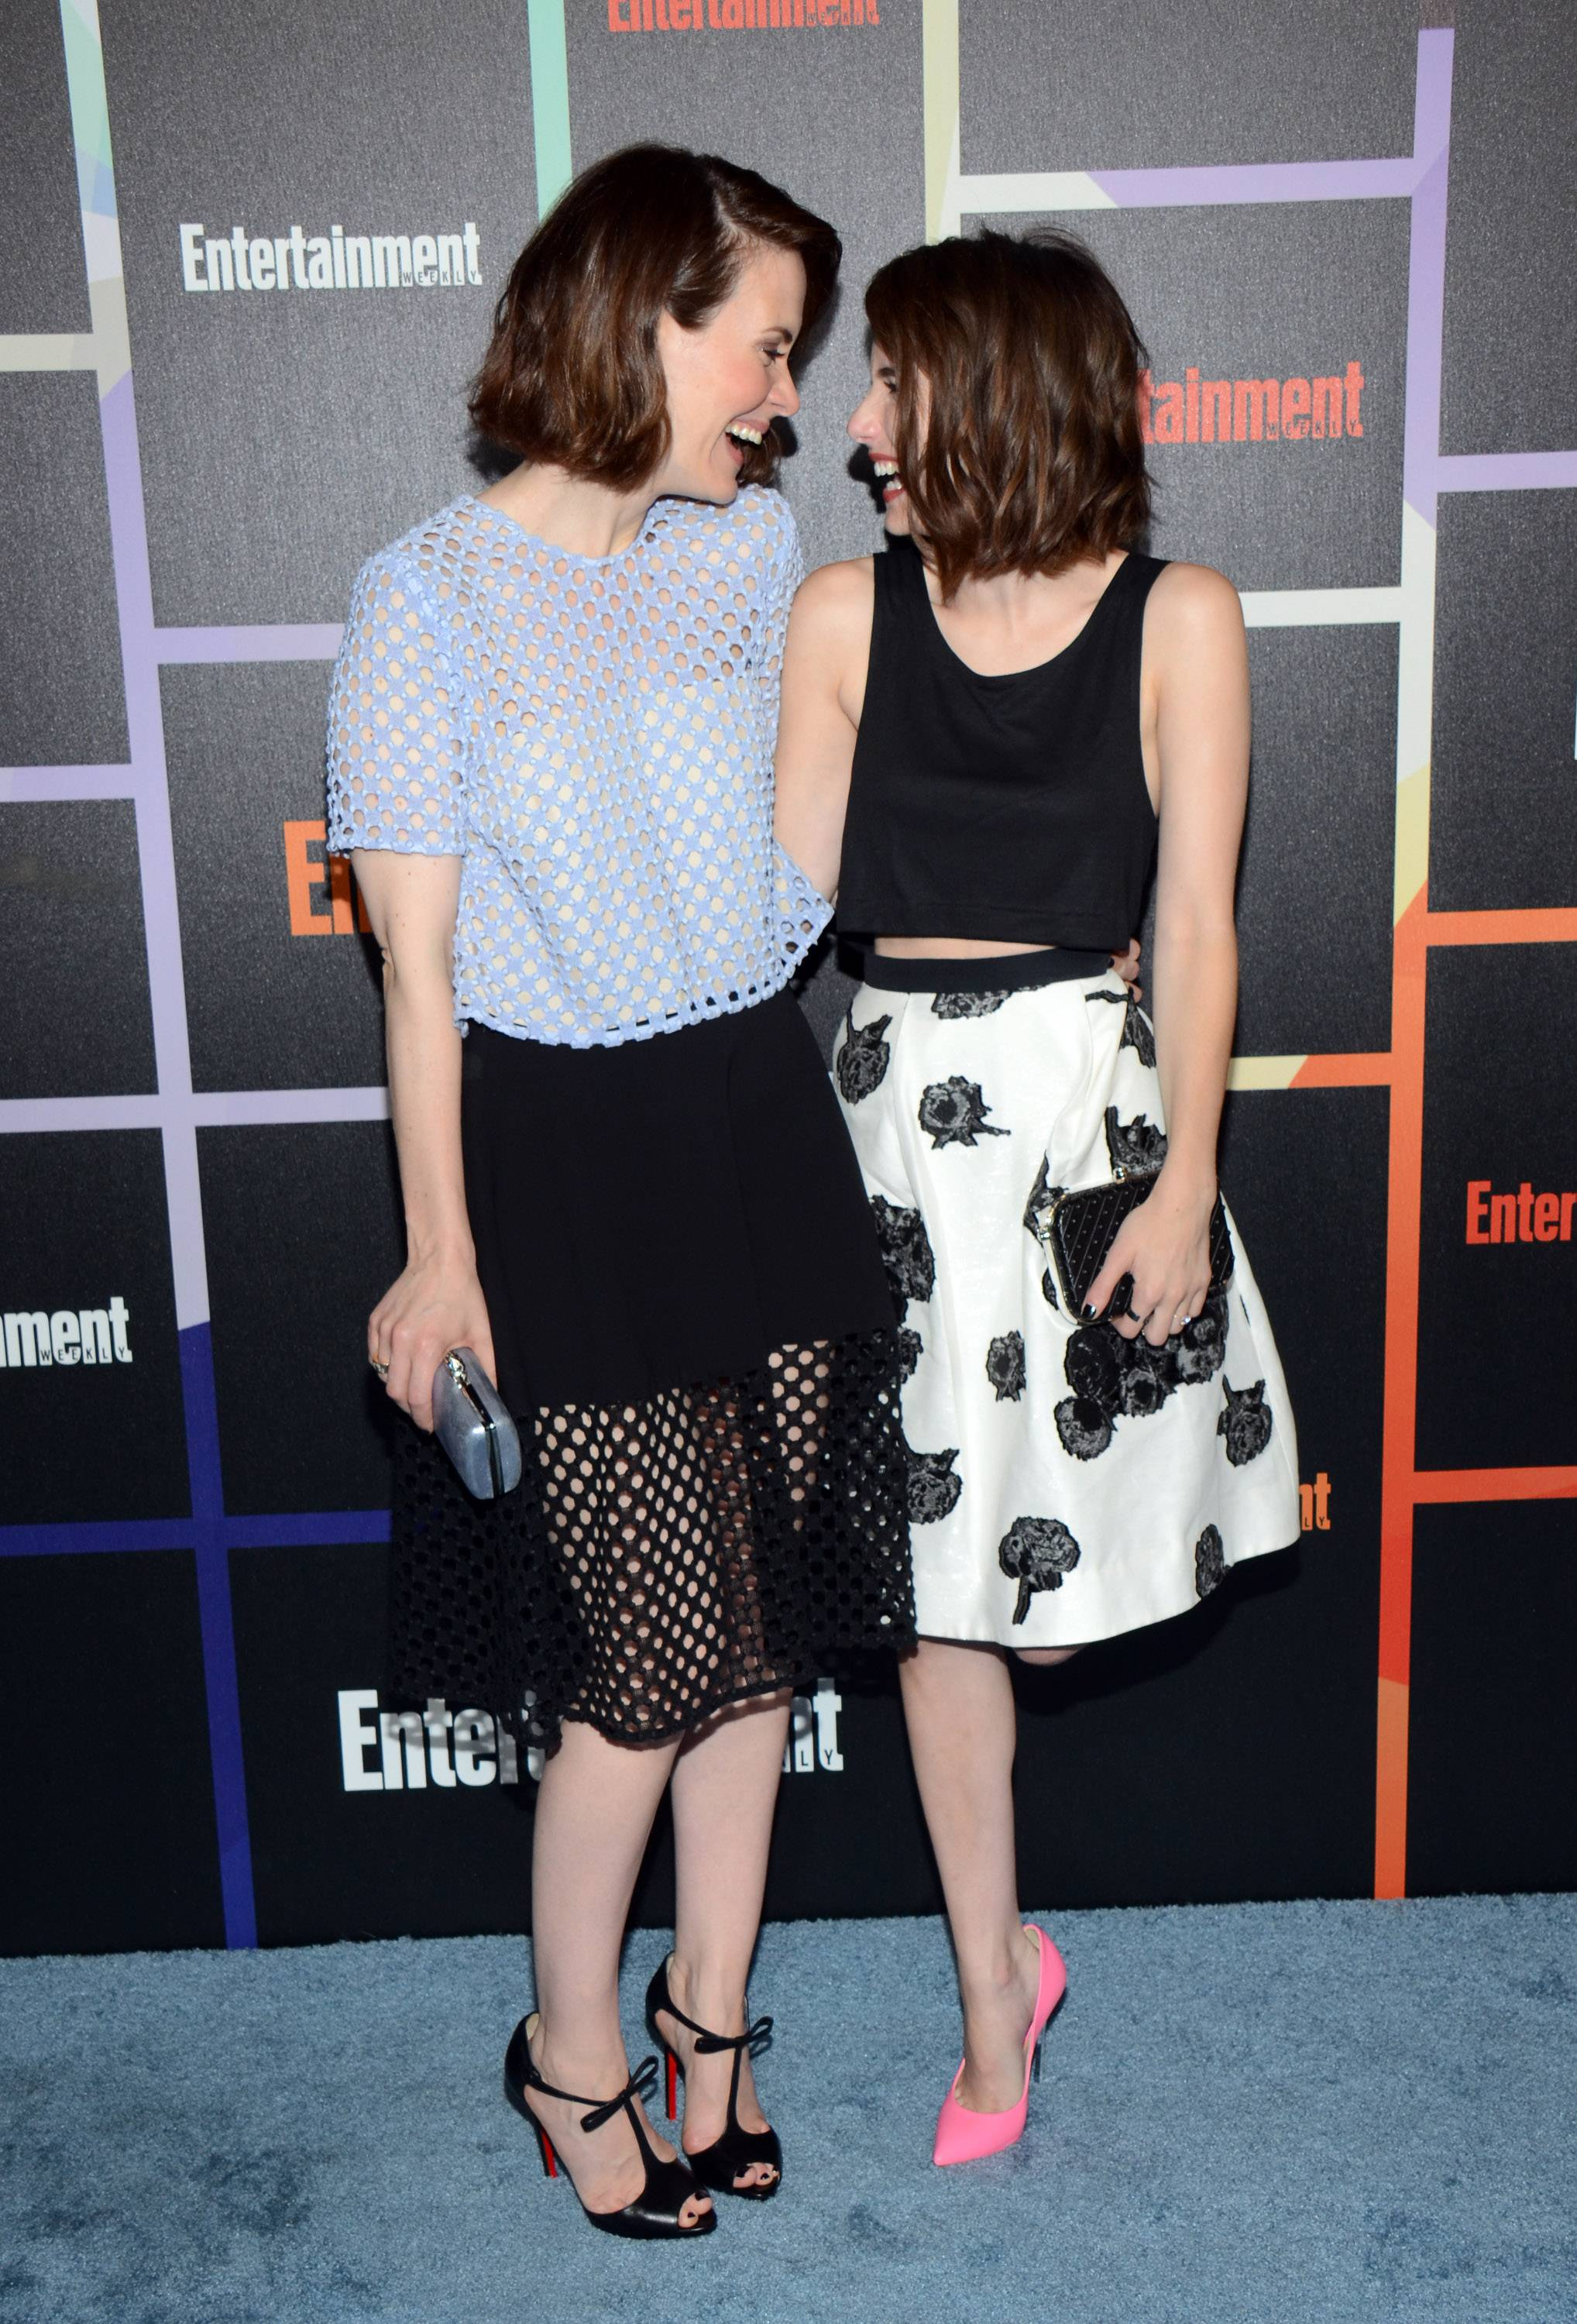 From left, Sarah Paulson and Emma Roberts arrive at Entertainment Weekly's Annual Comic-Con Closing Night Celebration at the Hard Rock Hotel on Saturday.